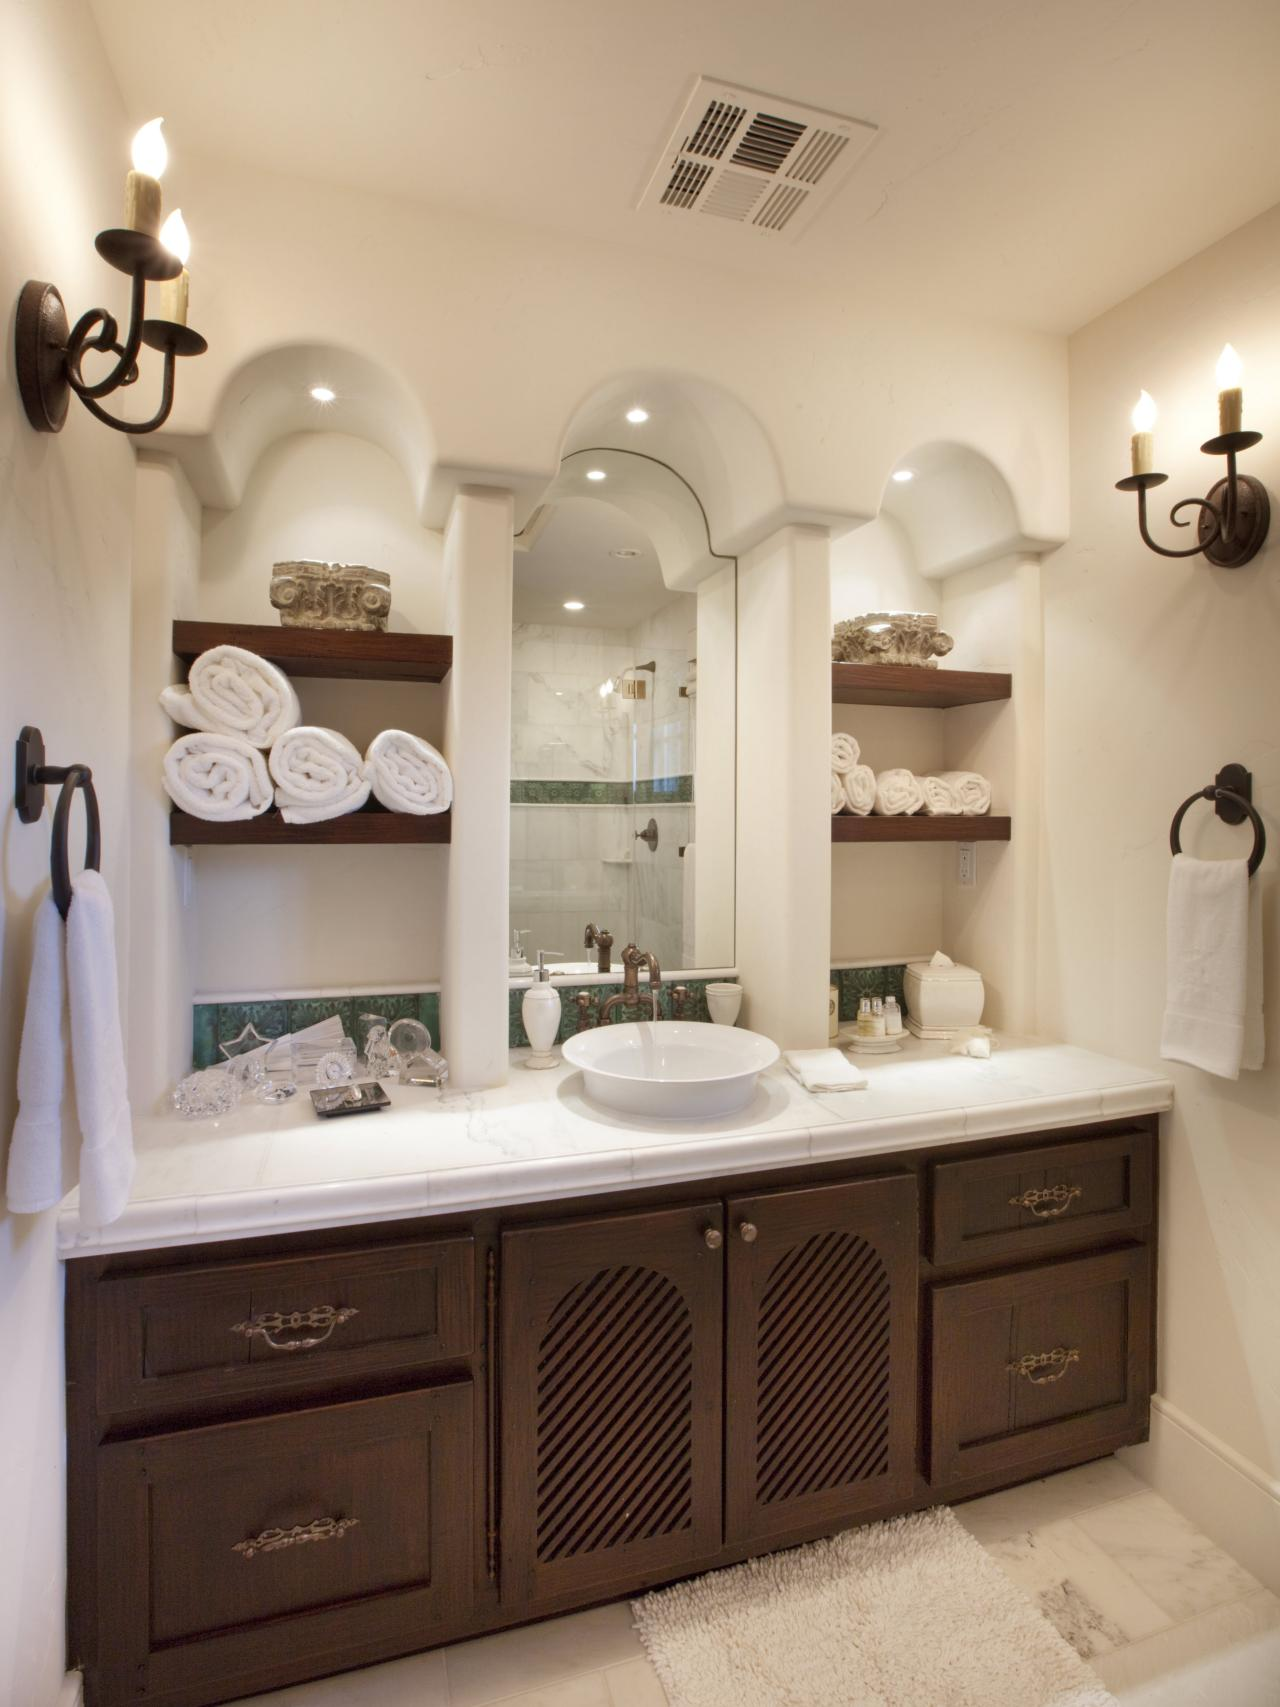 7 Creative Storage Solutions for Bathroom Towels and Toilet Paper  HGTV